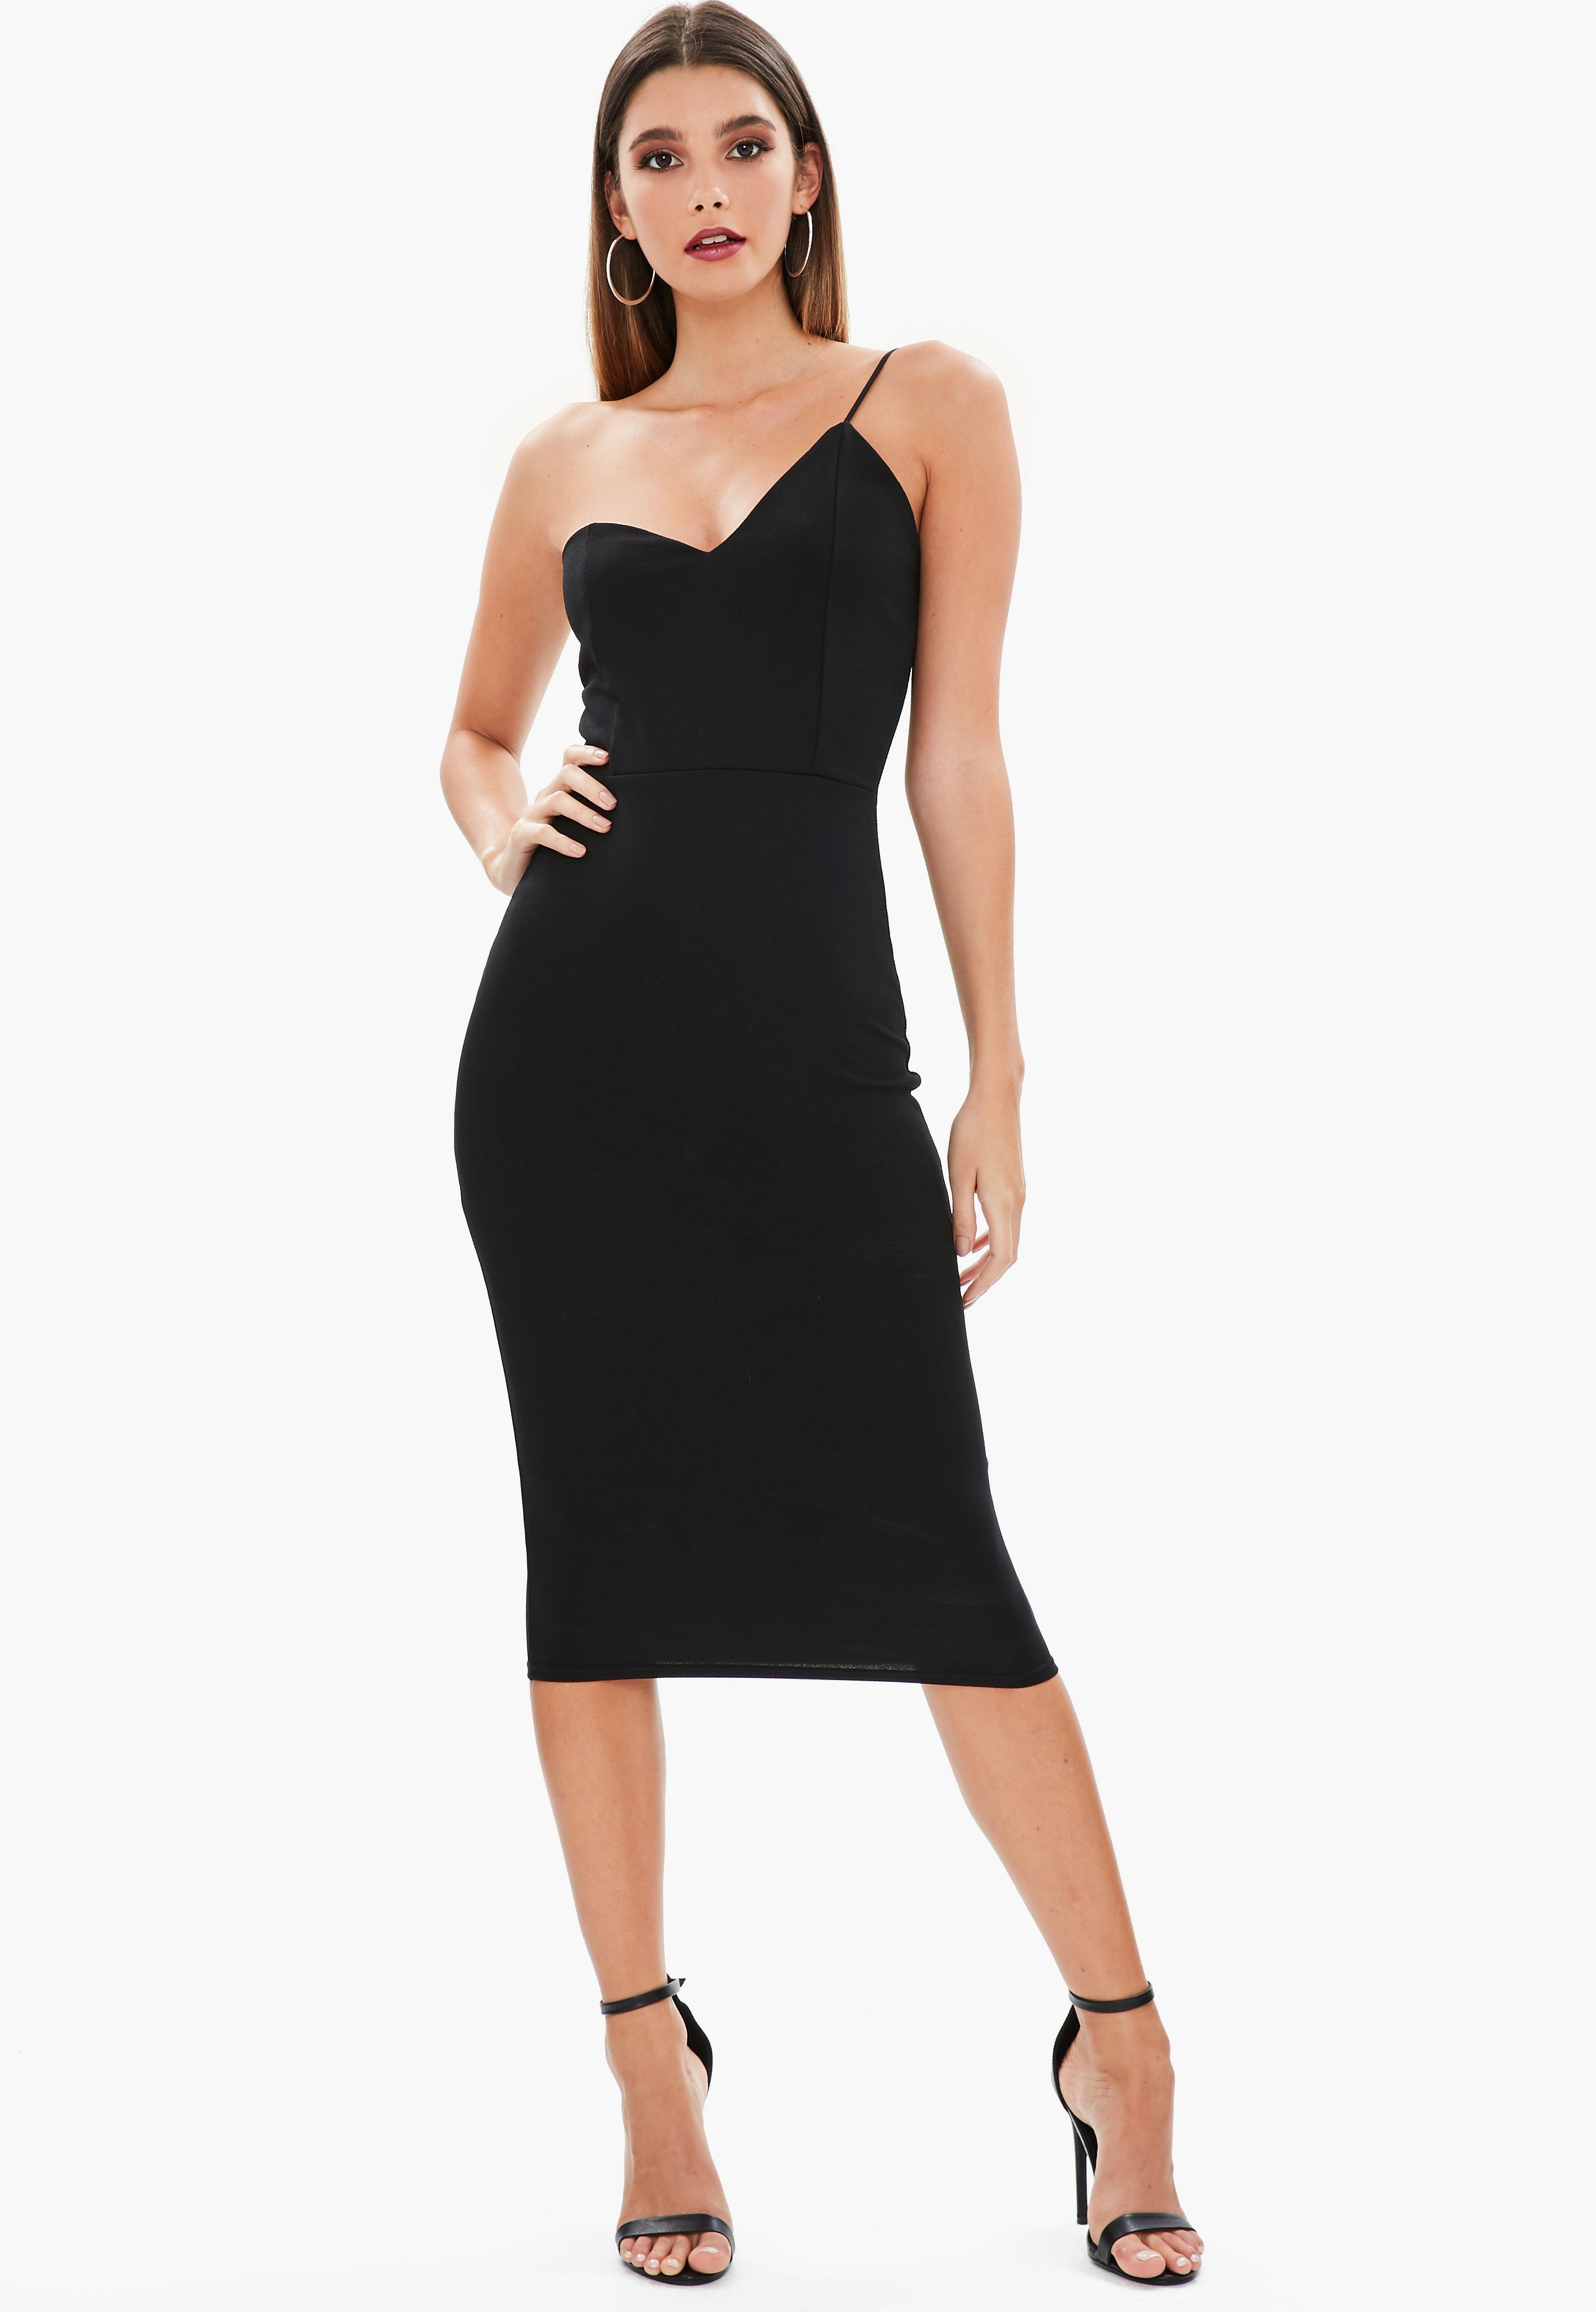 New years eve dresses and nye party outfits missguided ombrellifo Images